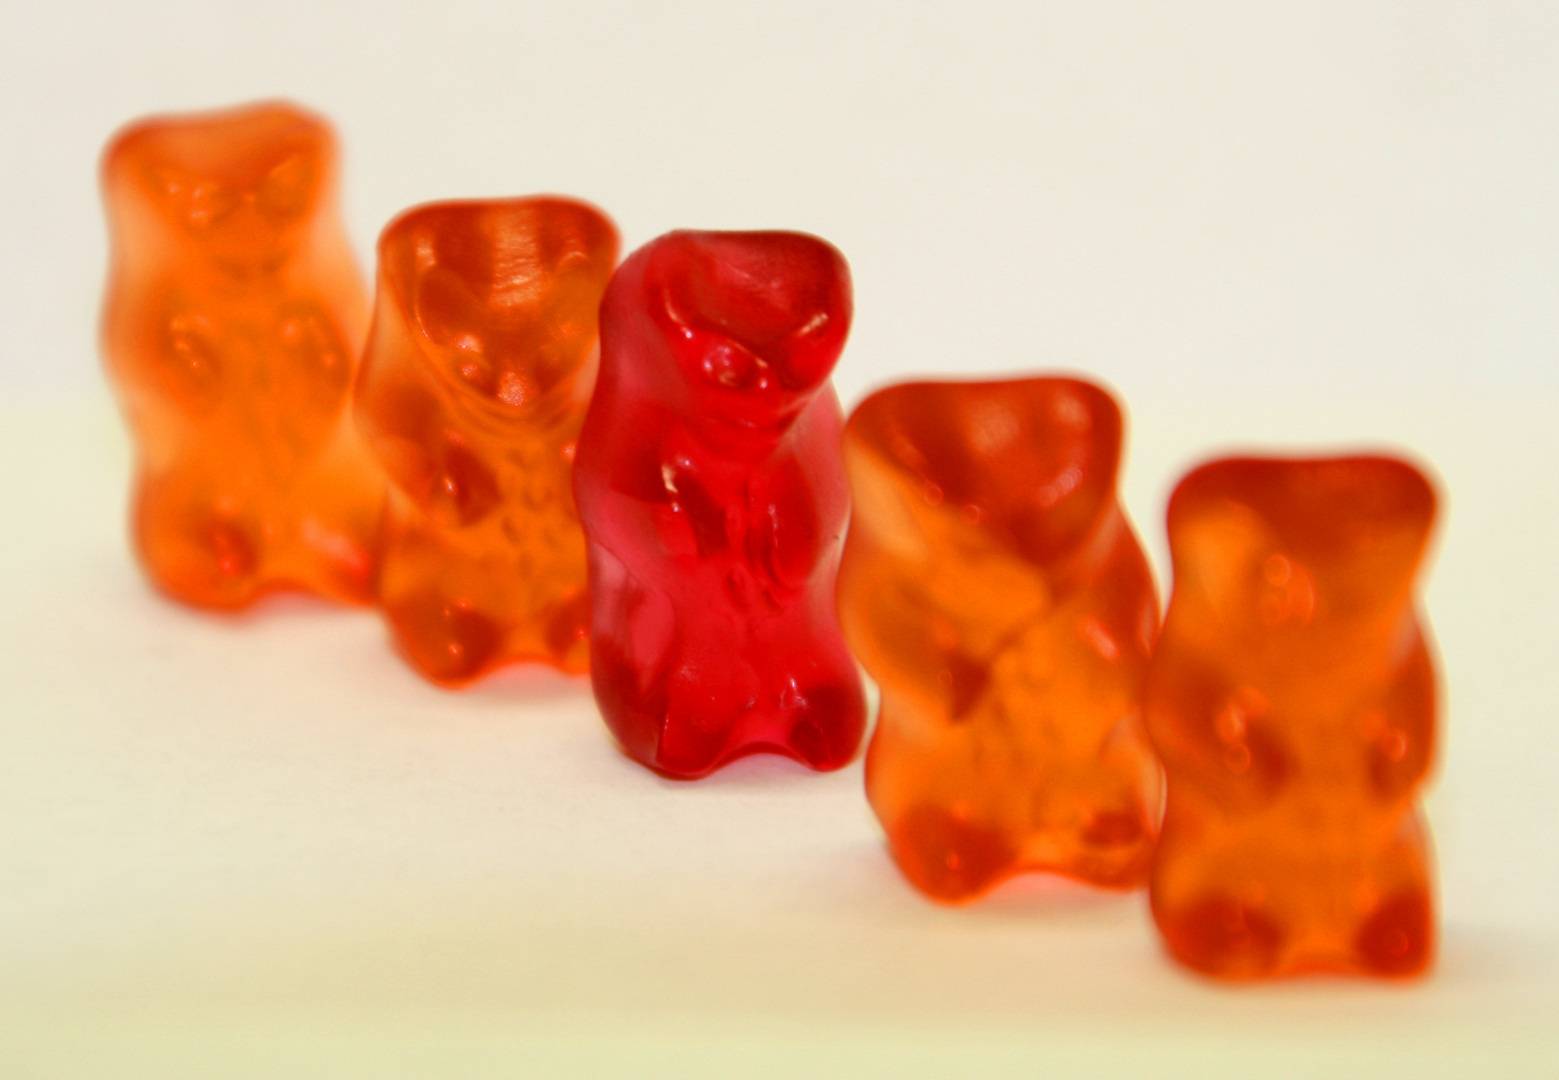 HARIBO - Be different